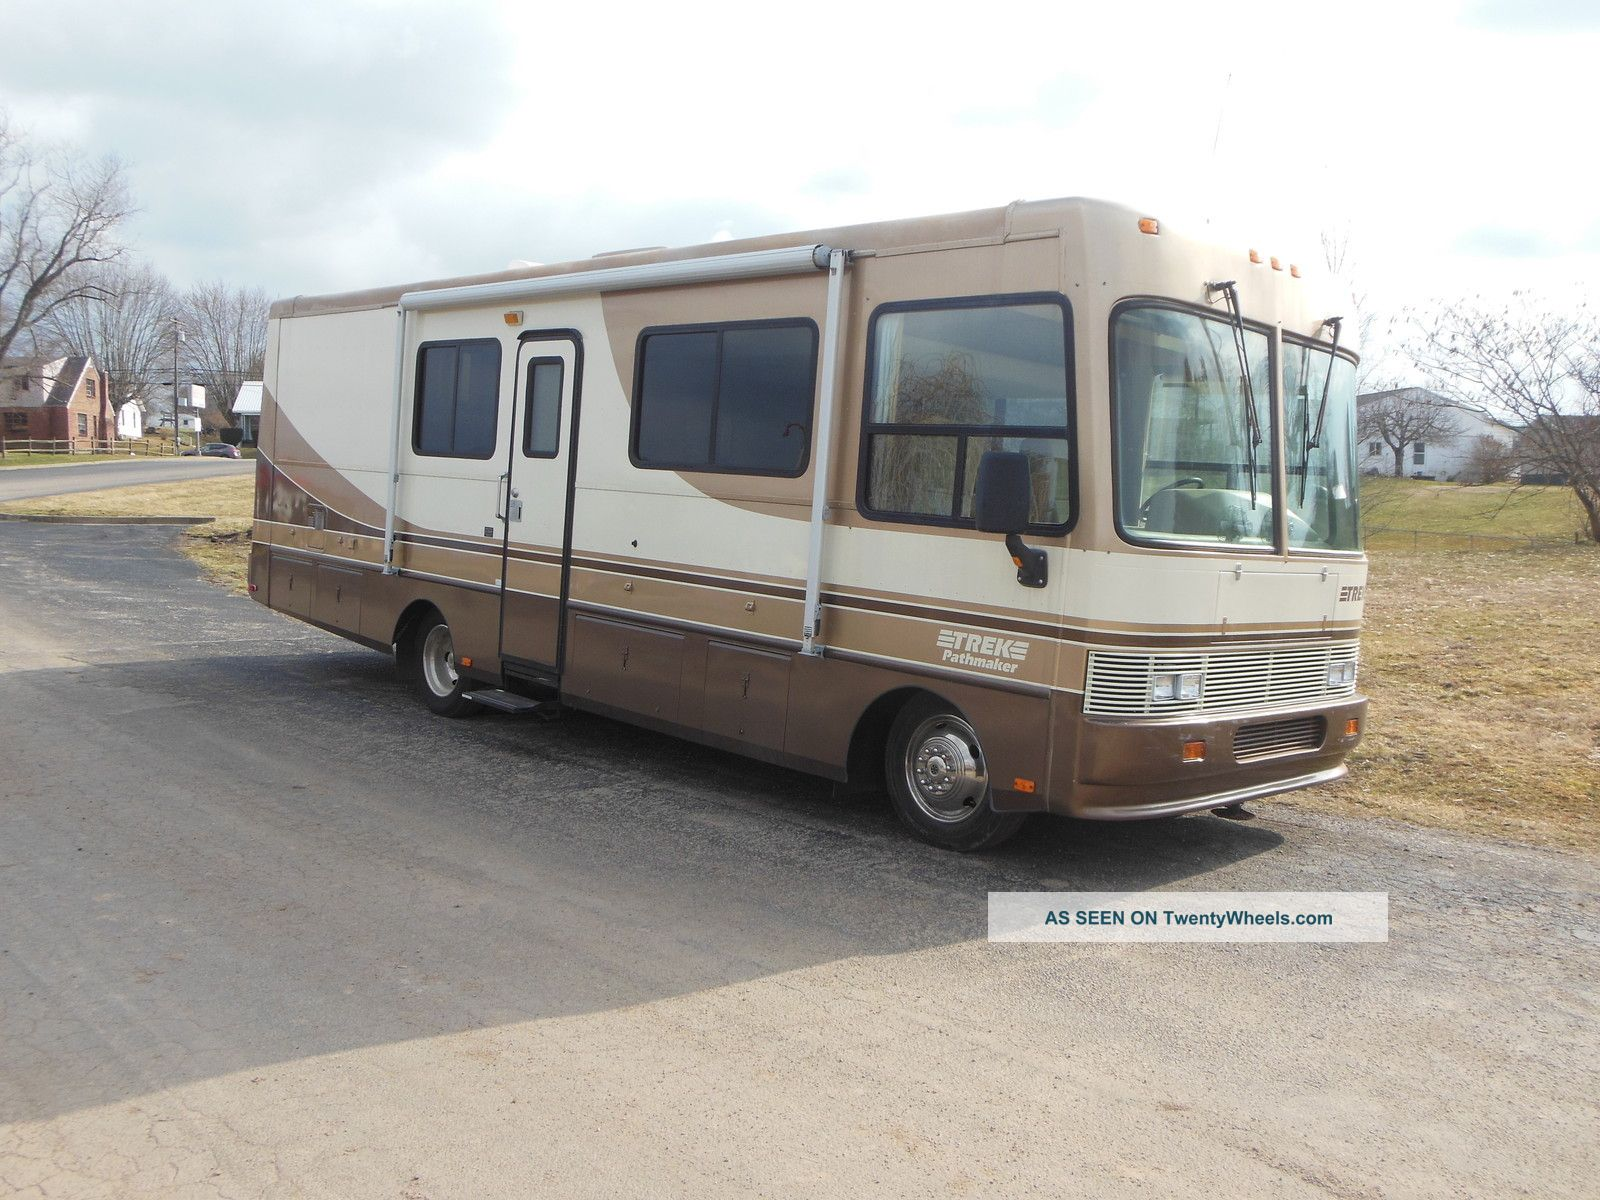 1998 Chevrolet Chassis Trek Safara Class A Motorhome Trek Safara Class A Class A RVs photo